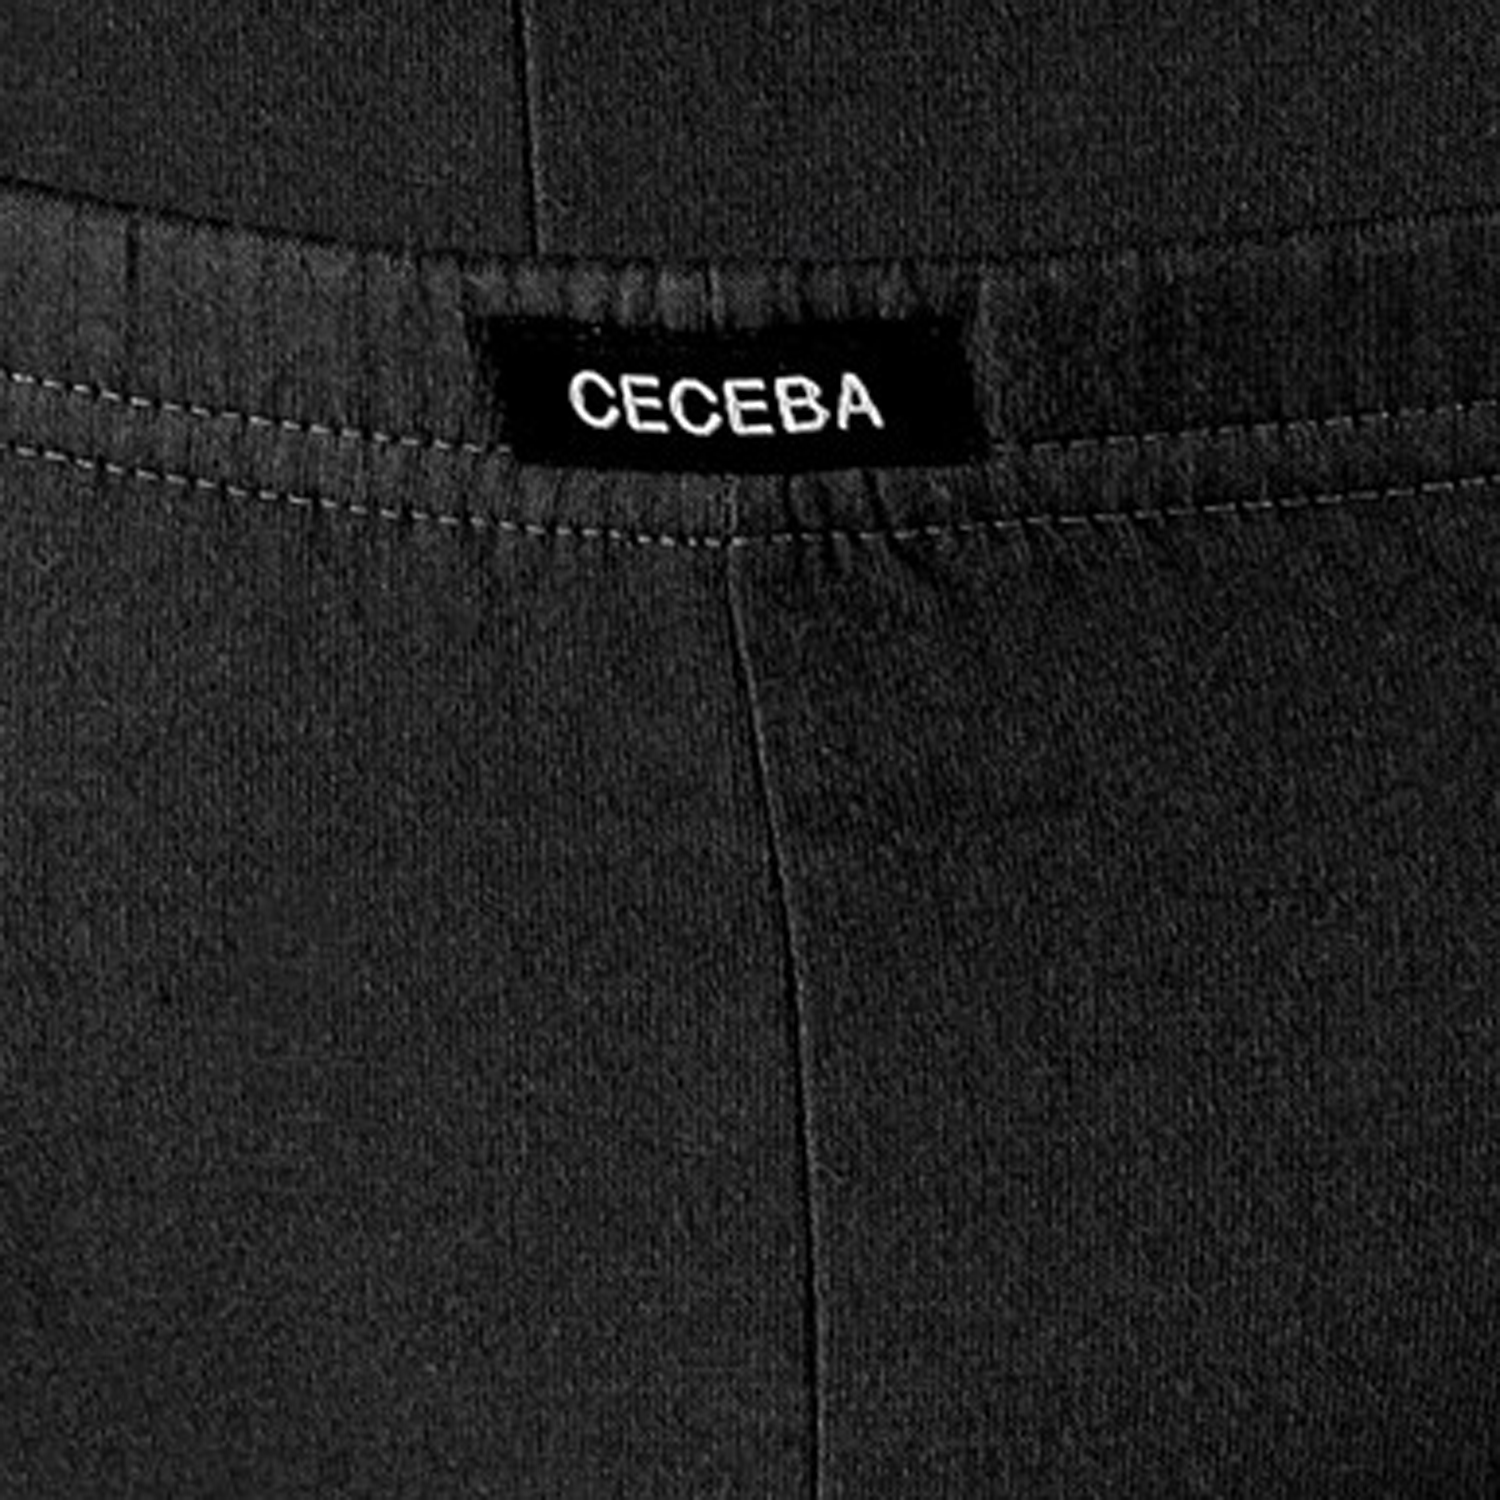 Detail Image to Briefs in black by Ceceba up to oversize 18 / pack of 3